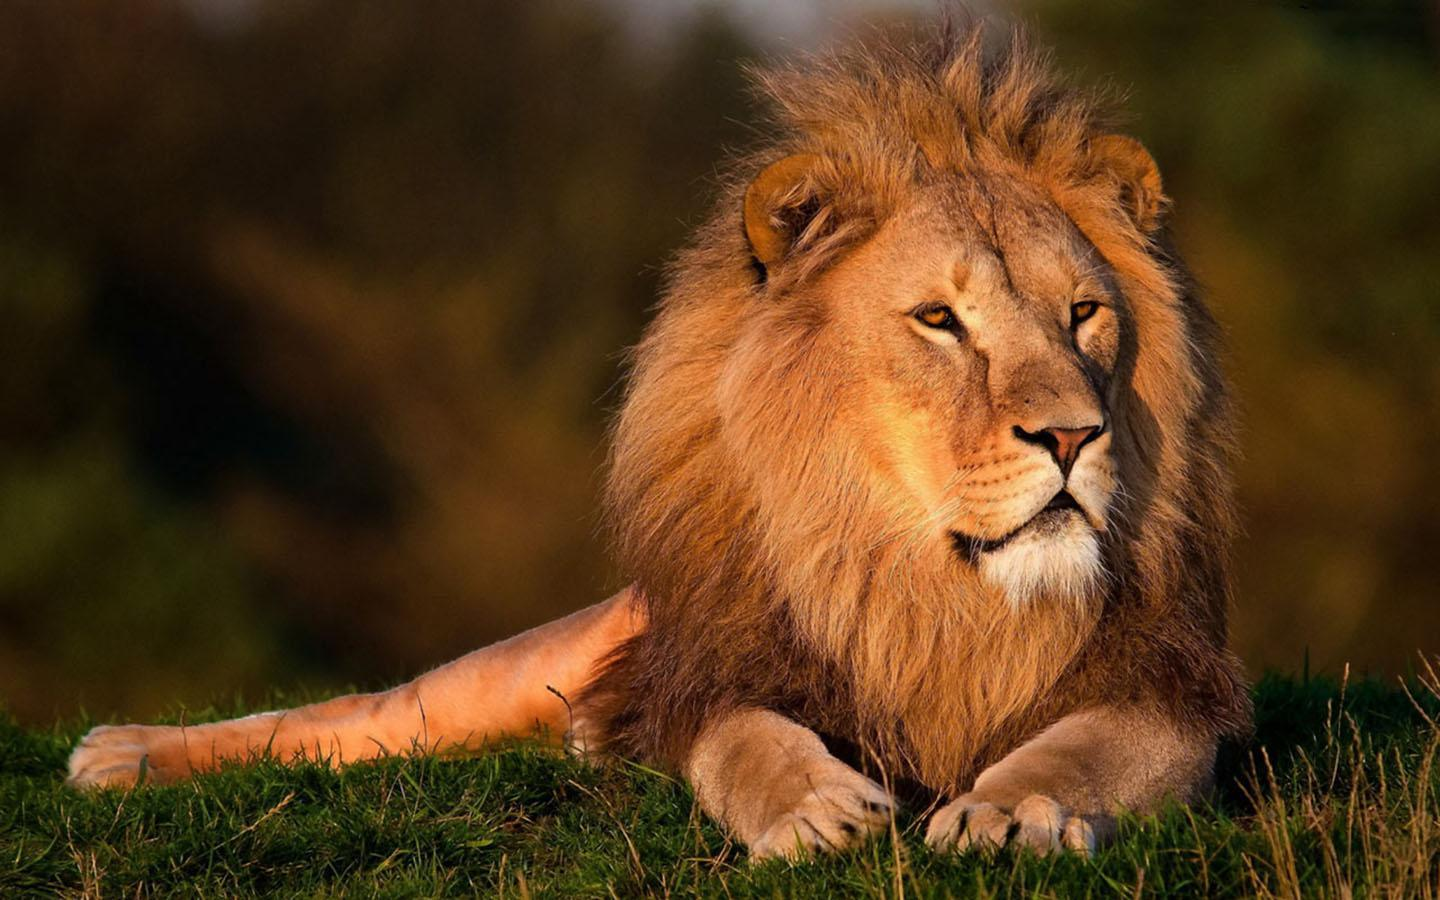 Lions Hd Wallpaper For Android Apk Download